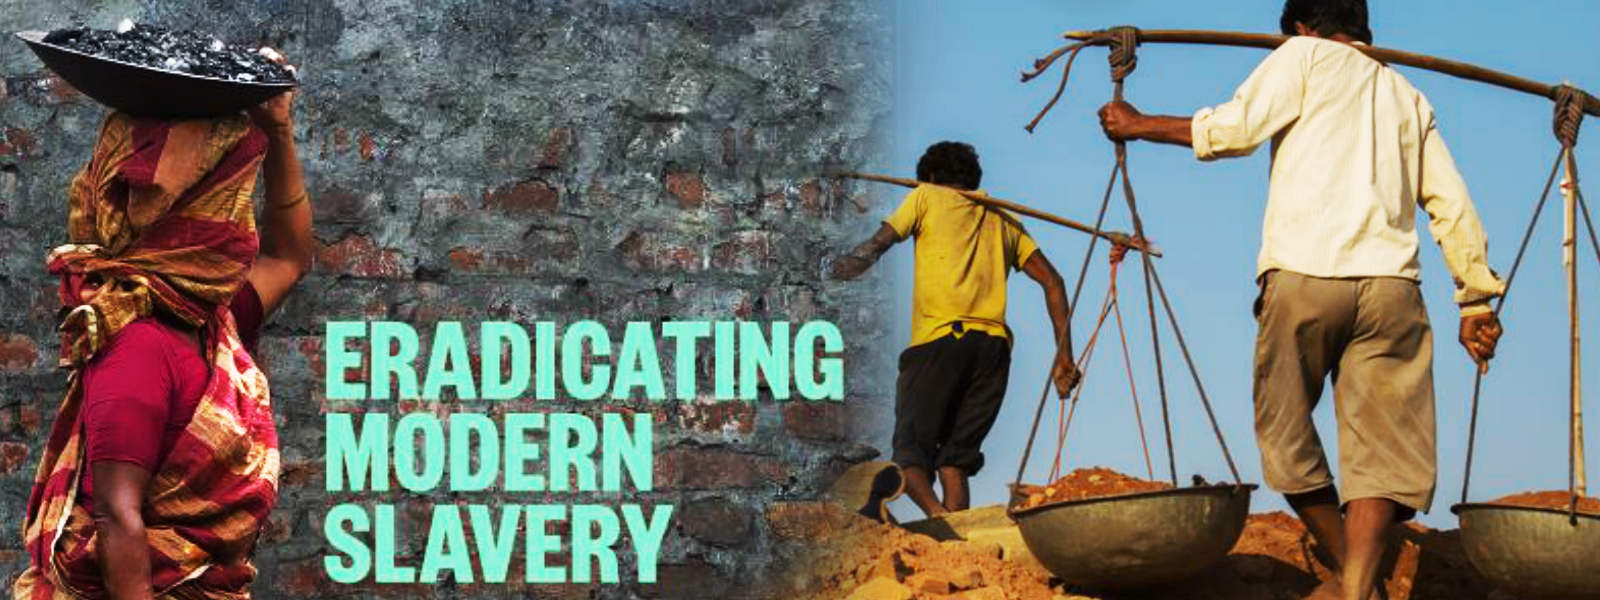 'We can't wait a moment longer', report on slavery calls on the world to act.